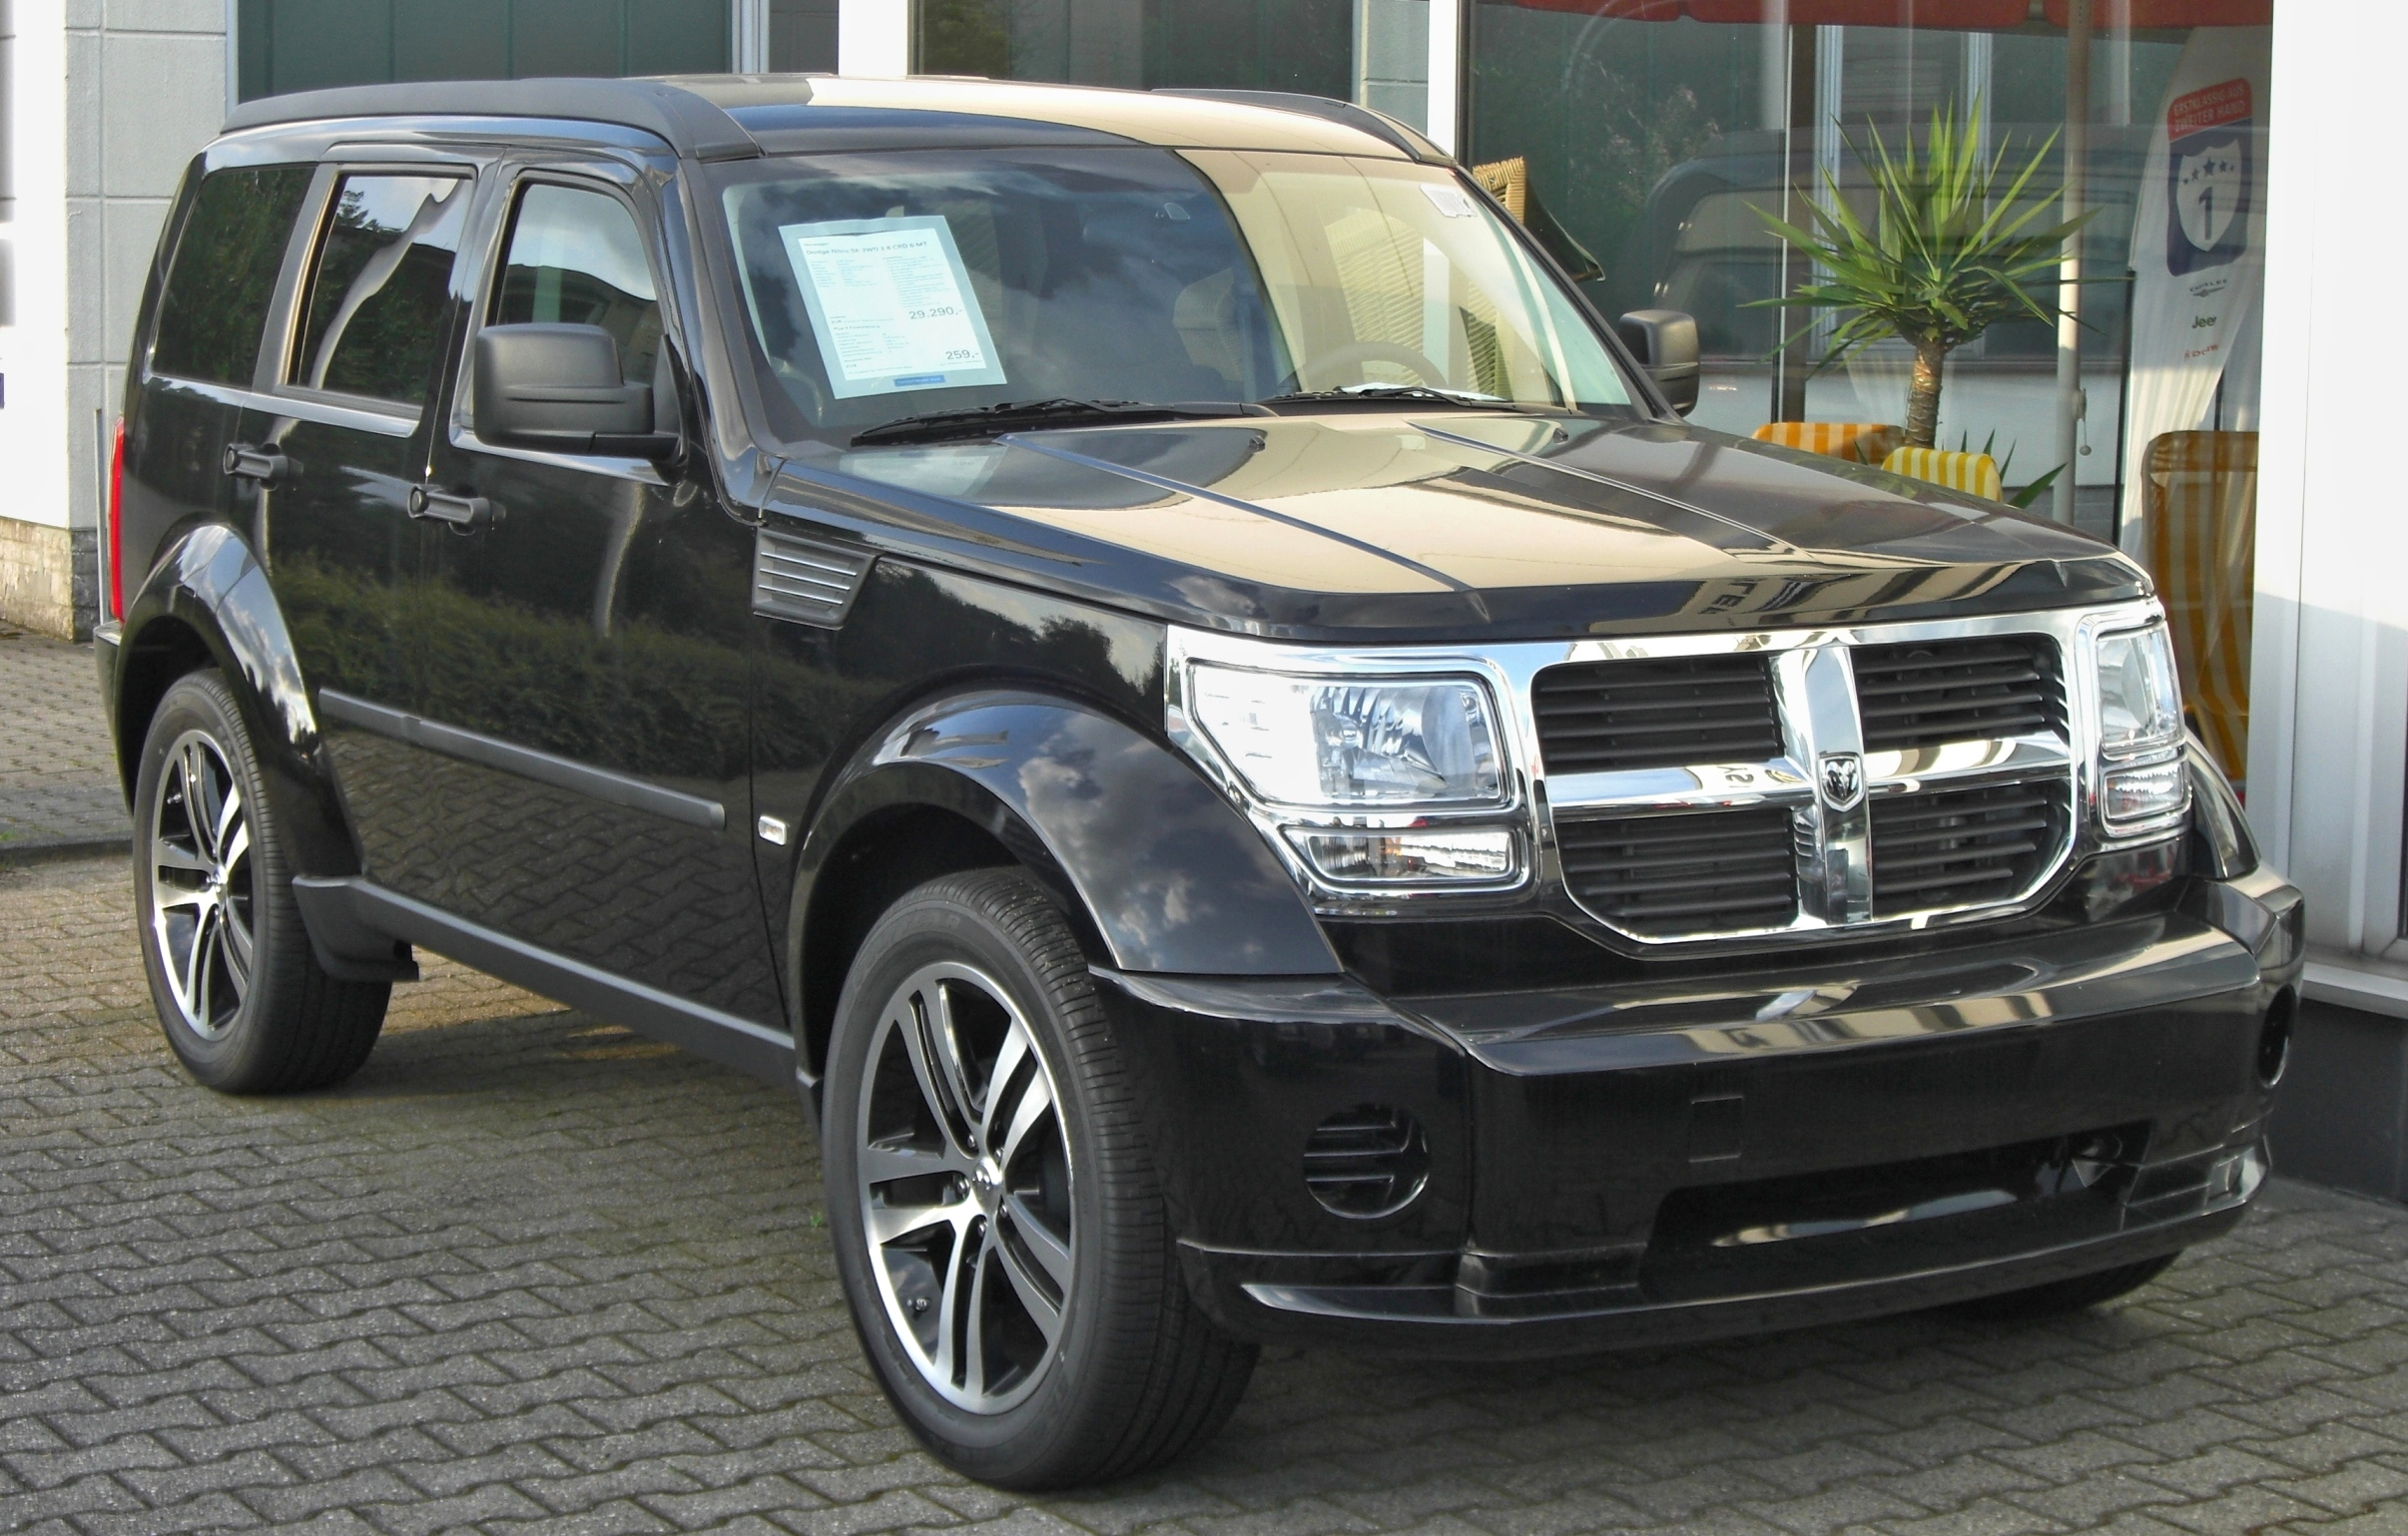 file dodge nitro 2 8 crd front 1 jpg wikimedia commons. Black Bedroom Furniture Sets. Home Design Ideas